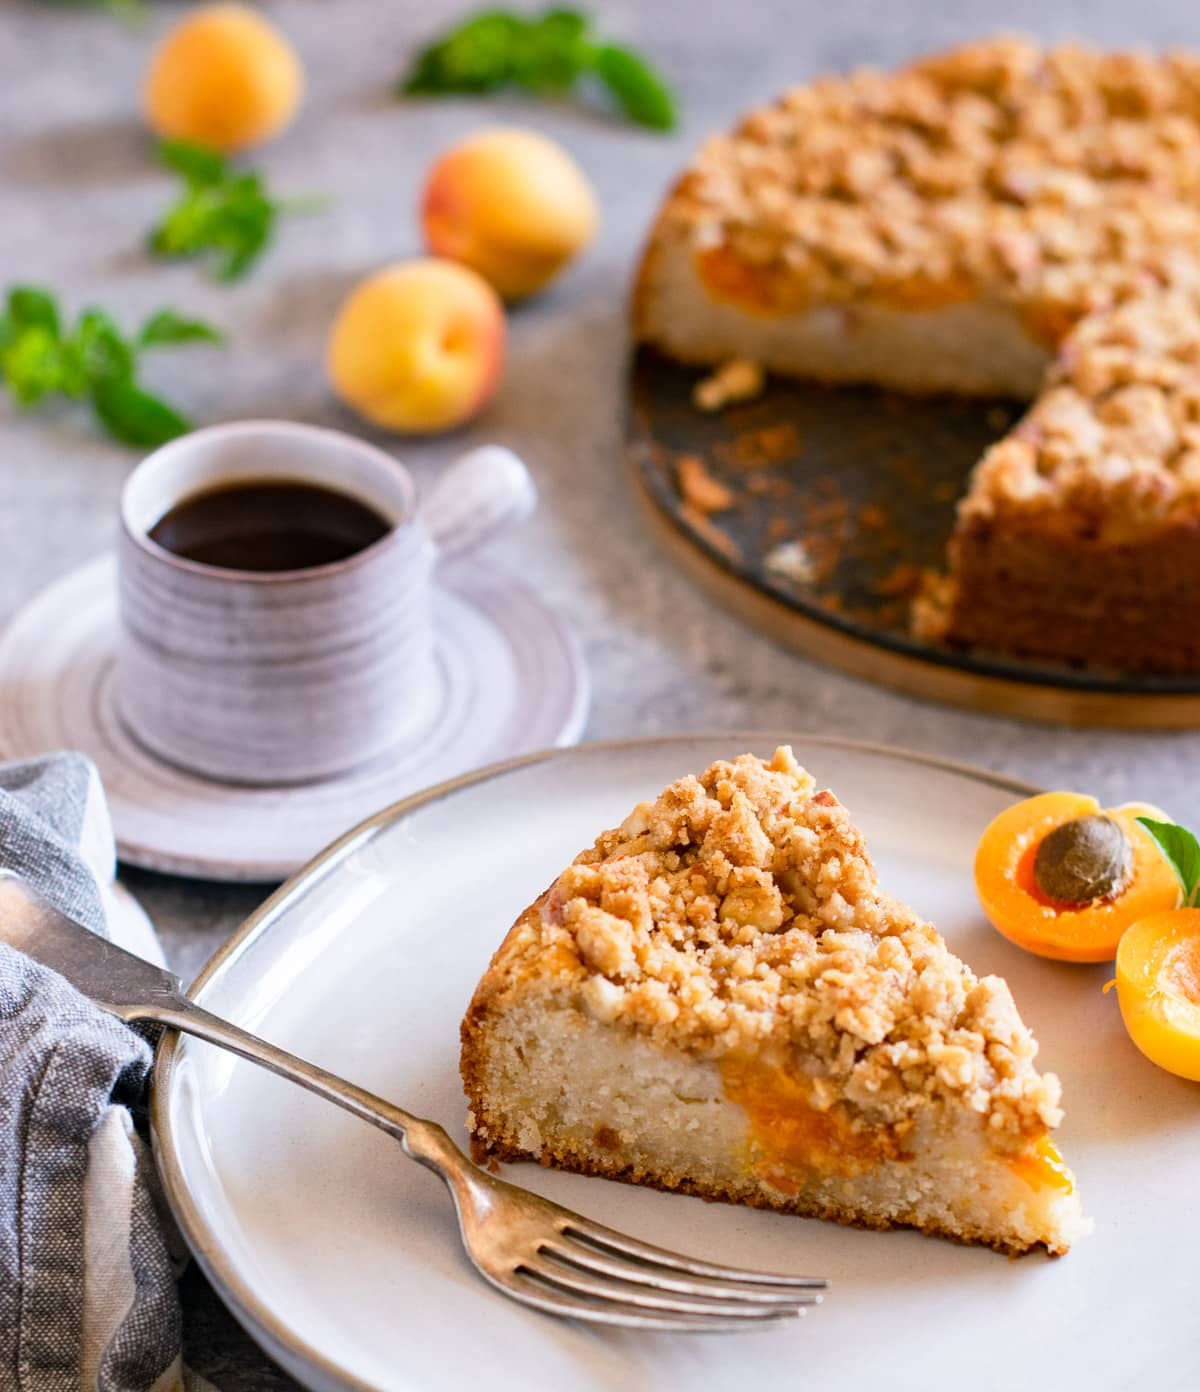 Coffee served with a slice of apricot crumb cake